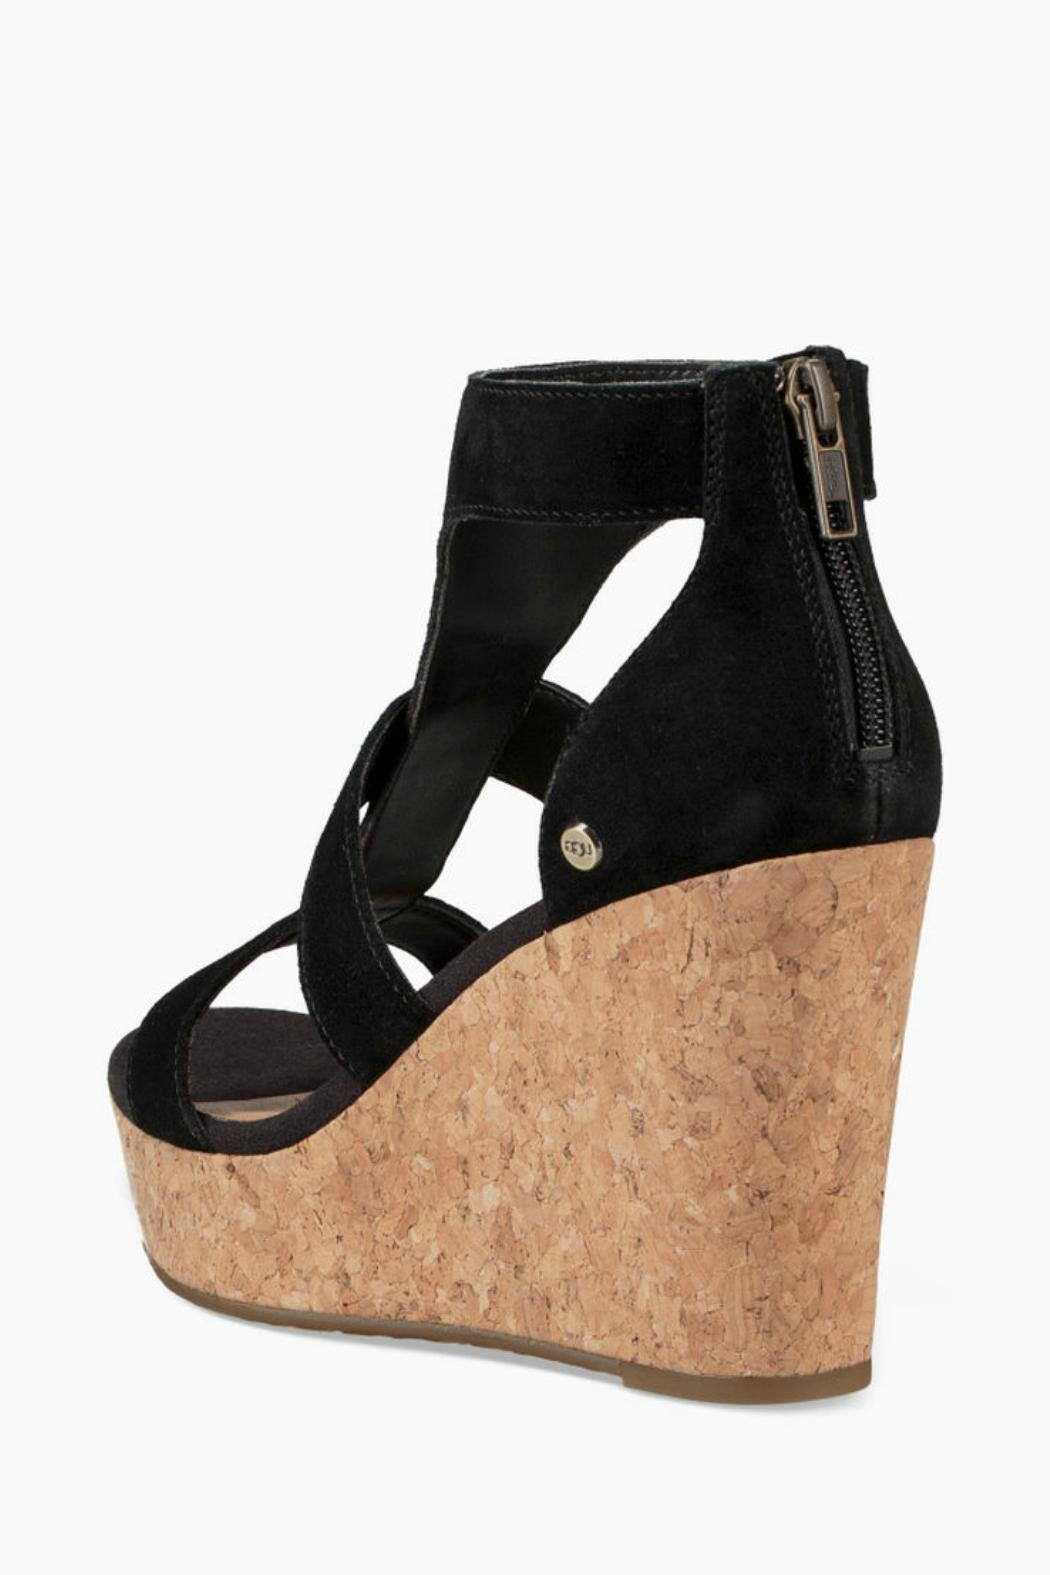 6653f353c64 UGG Australia Whitney Cork Wedge from New Hampshire by Stiletto ...